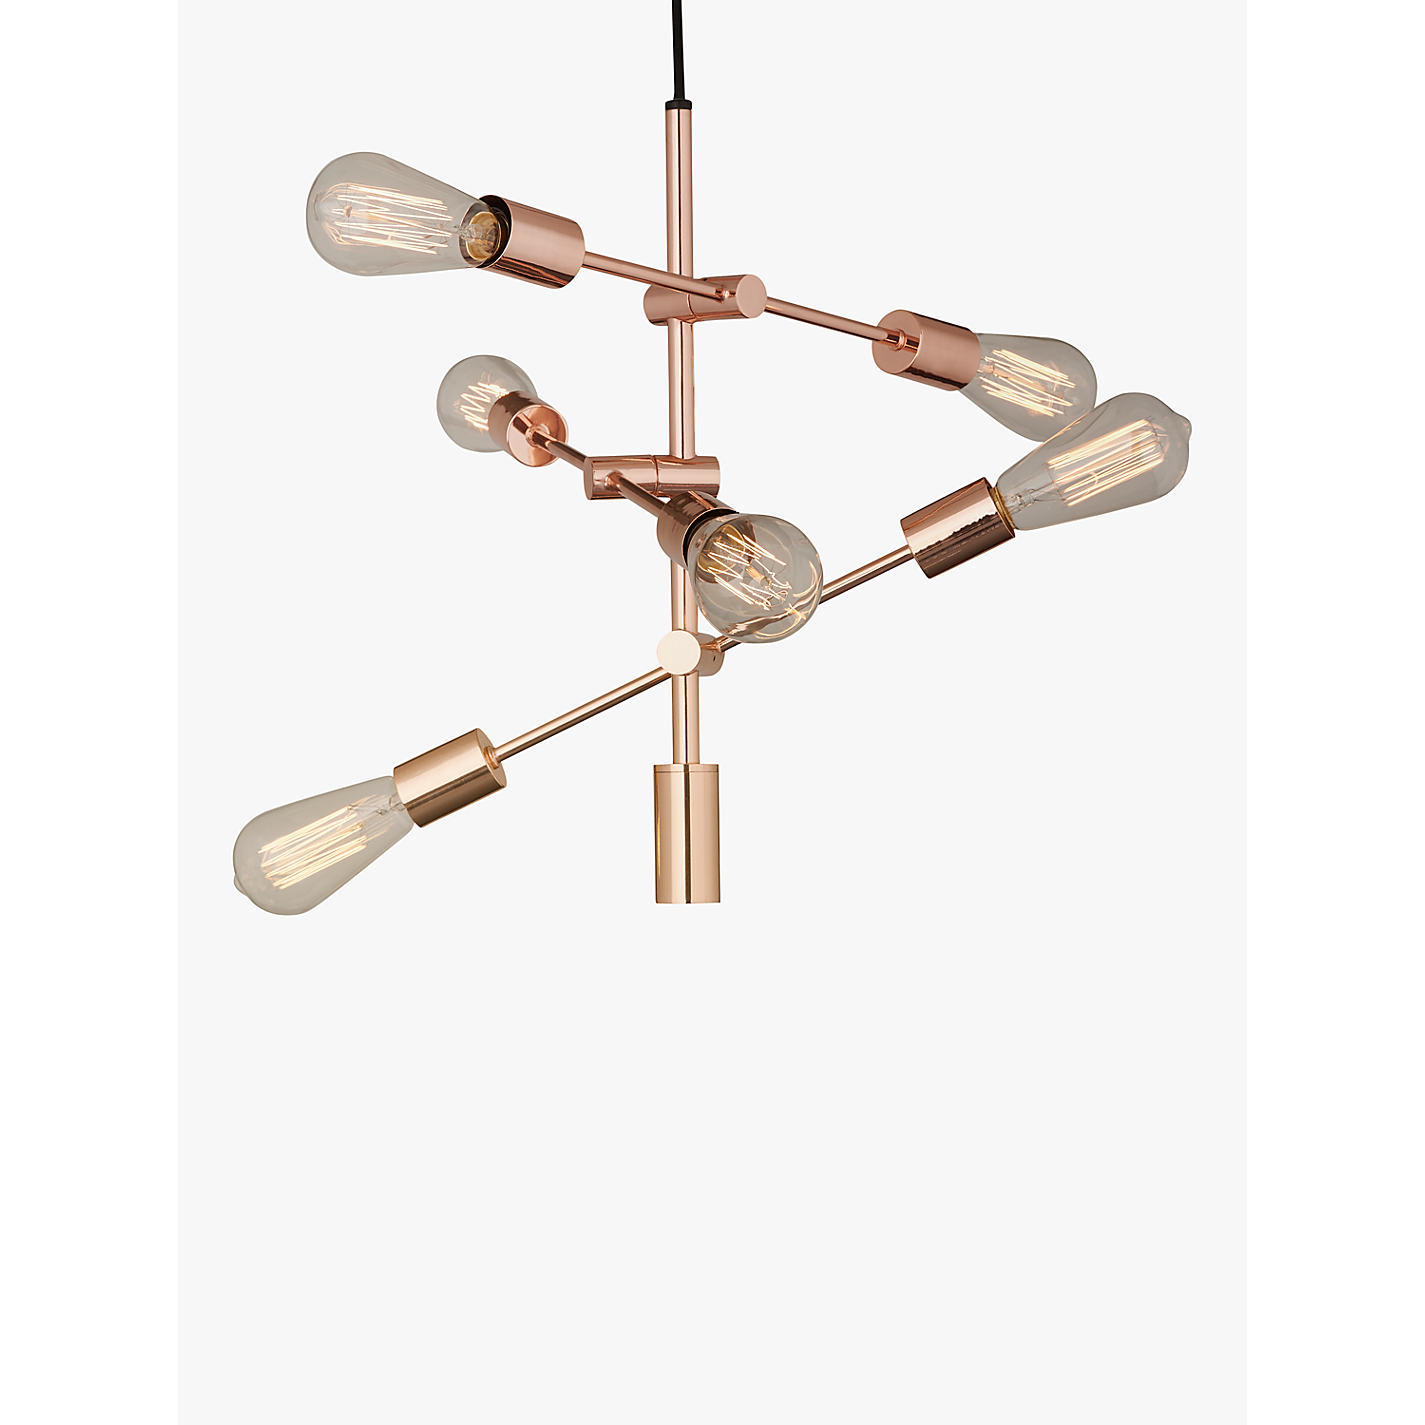 Buy house by john lewis elias retro pendant ceiling light copper buy house by john lewis elias retro pendant ceiling light copper online at johnlewis aloadofball Gallery